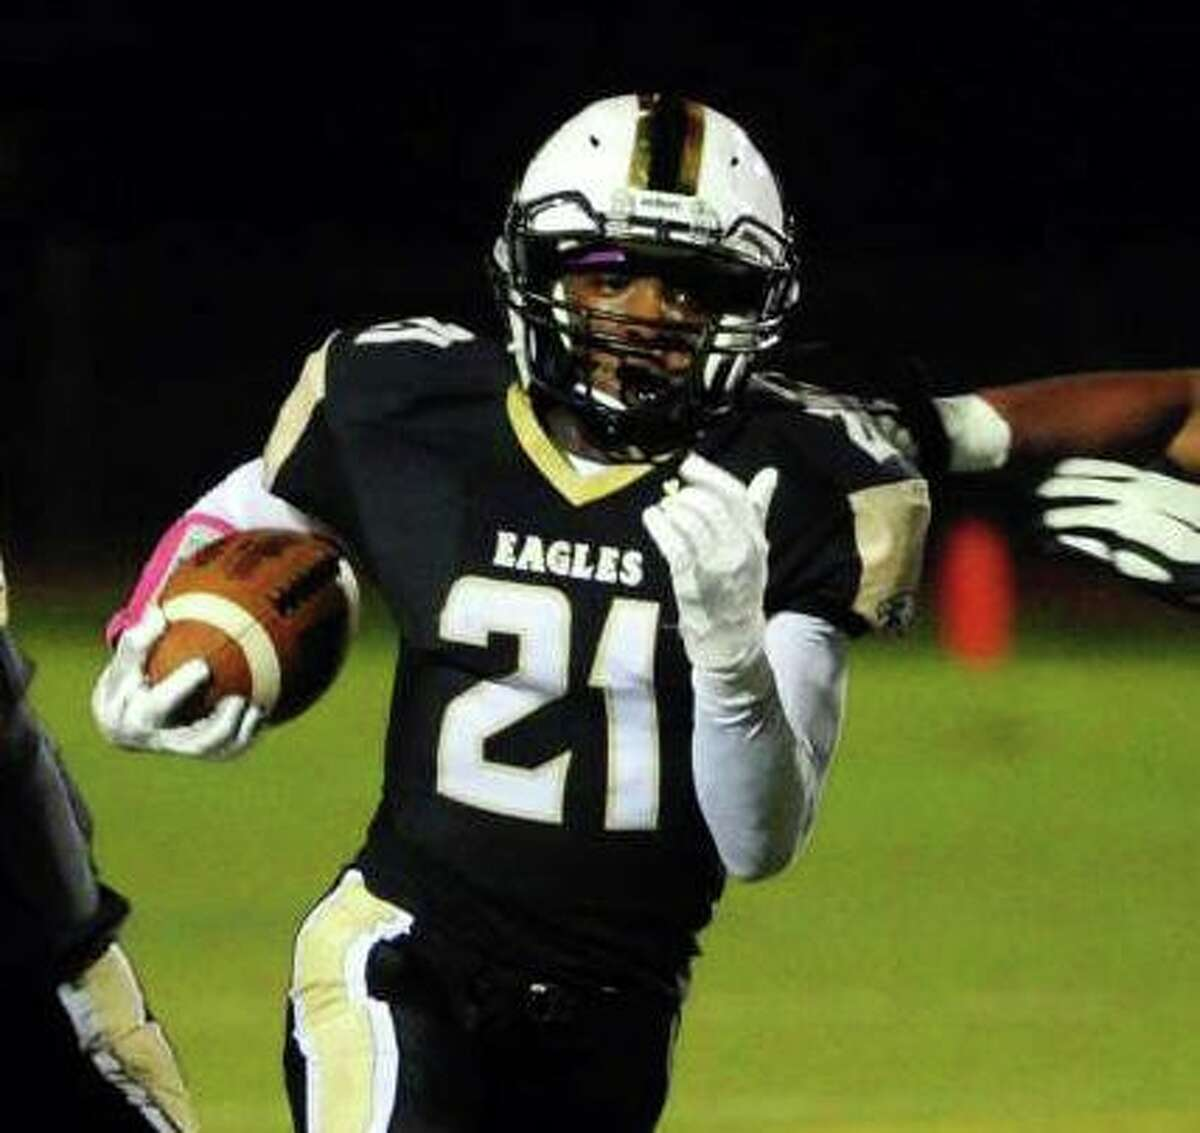 Mileeq Green finds space to run on Friday night.